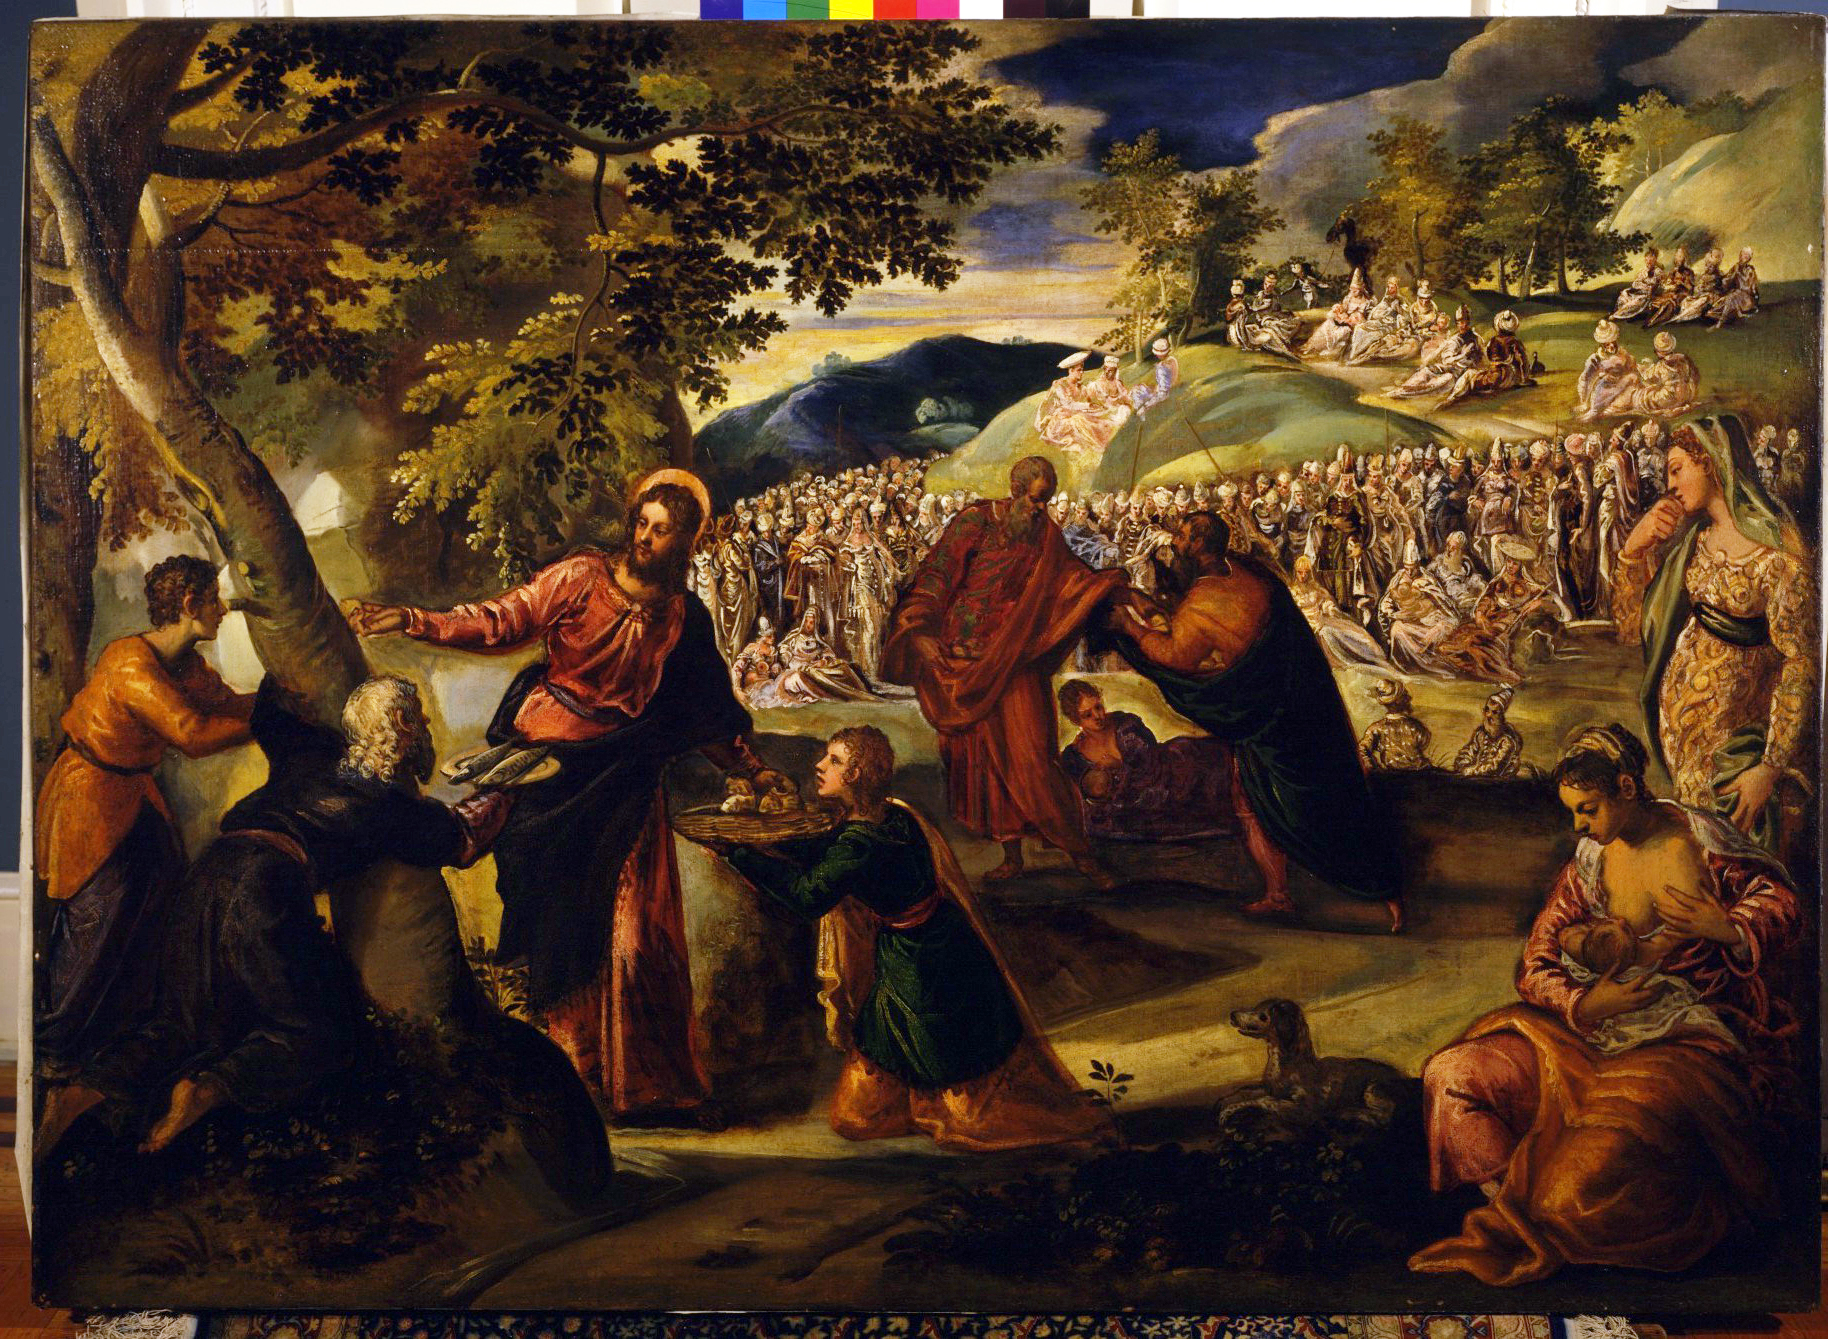 Tintoretto – The Miracle of the Loaves and Fishes